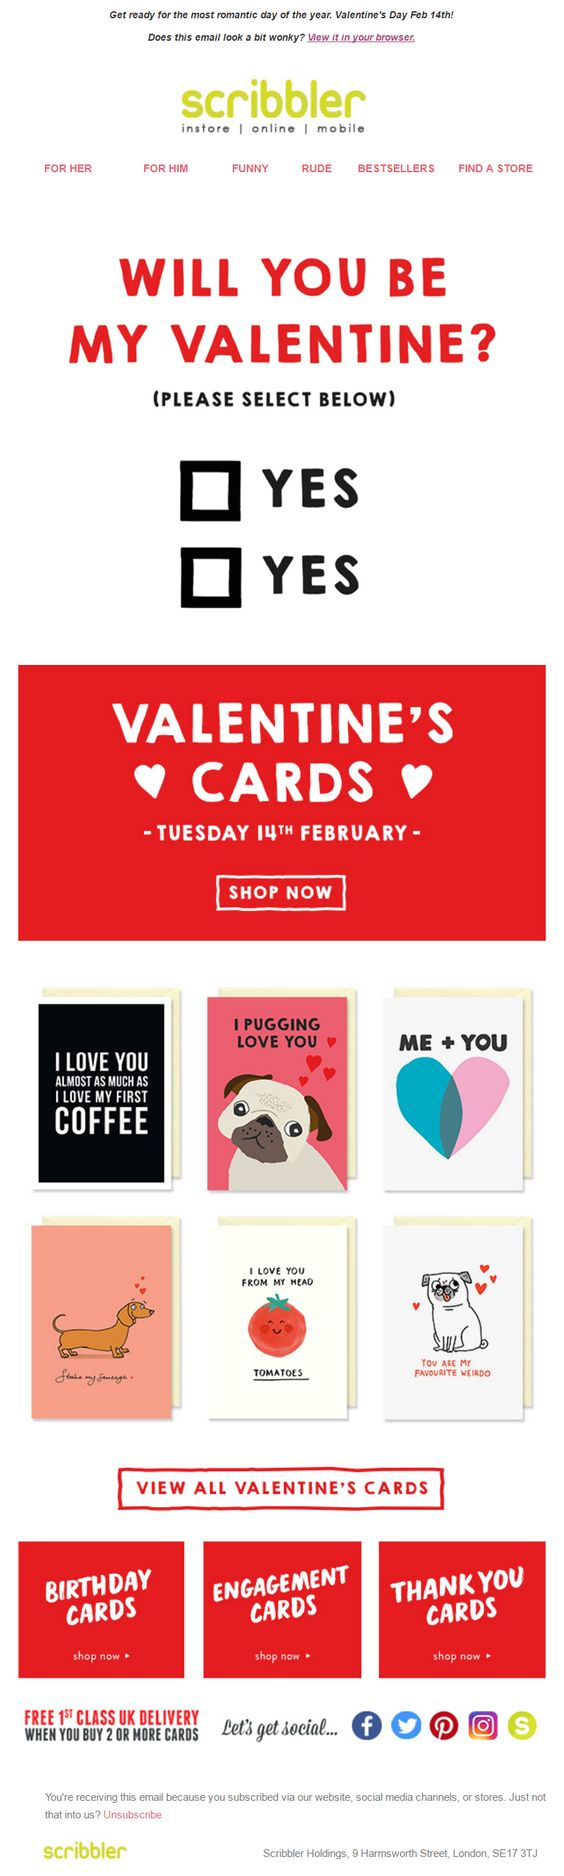 "Scribbler ""will you be my valentine?"" Valentine email design"